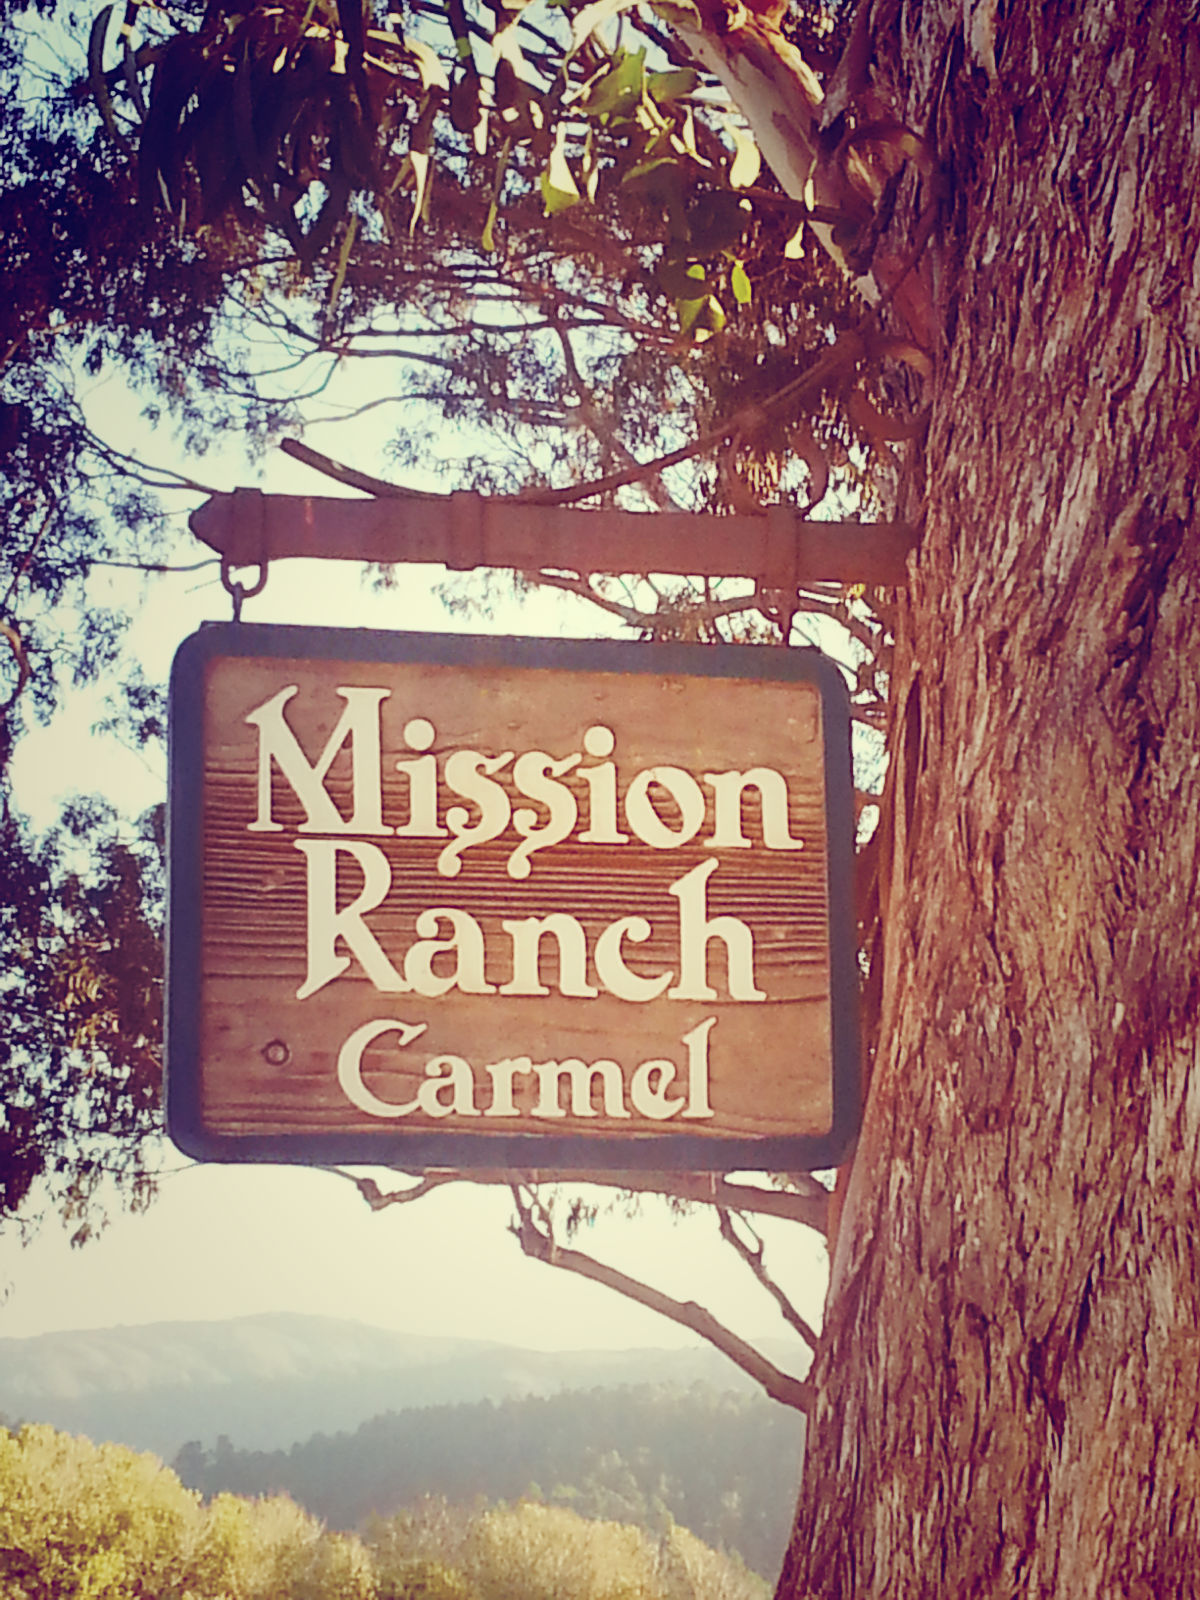 Welcome to the Mission Ranch